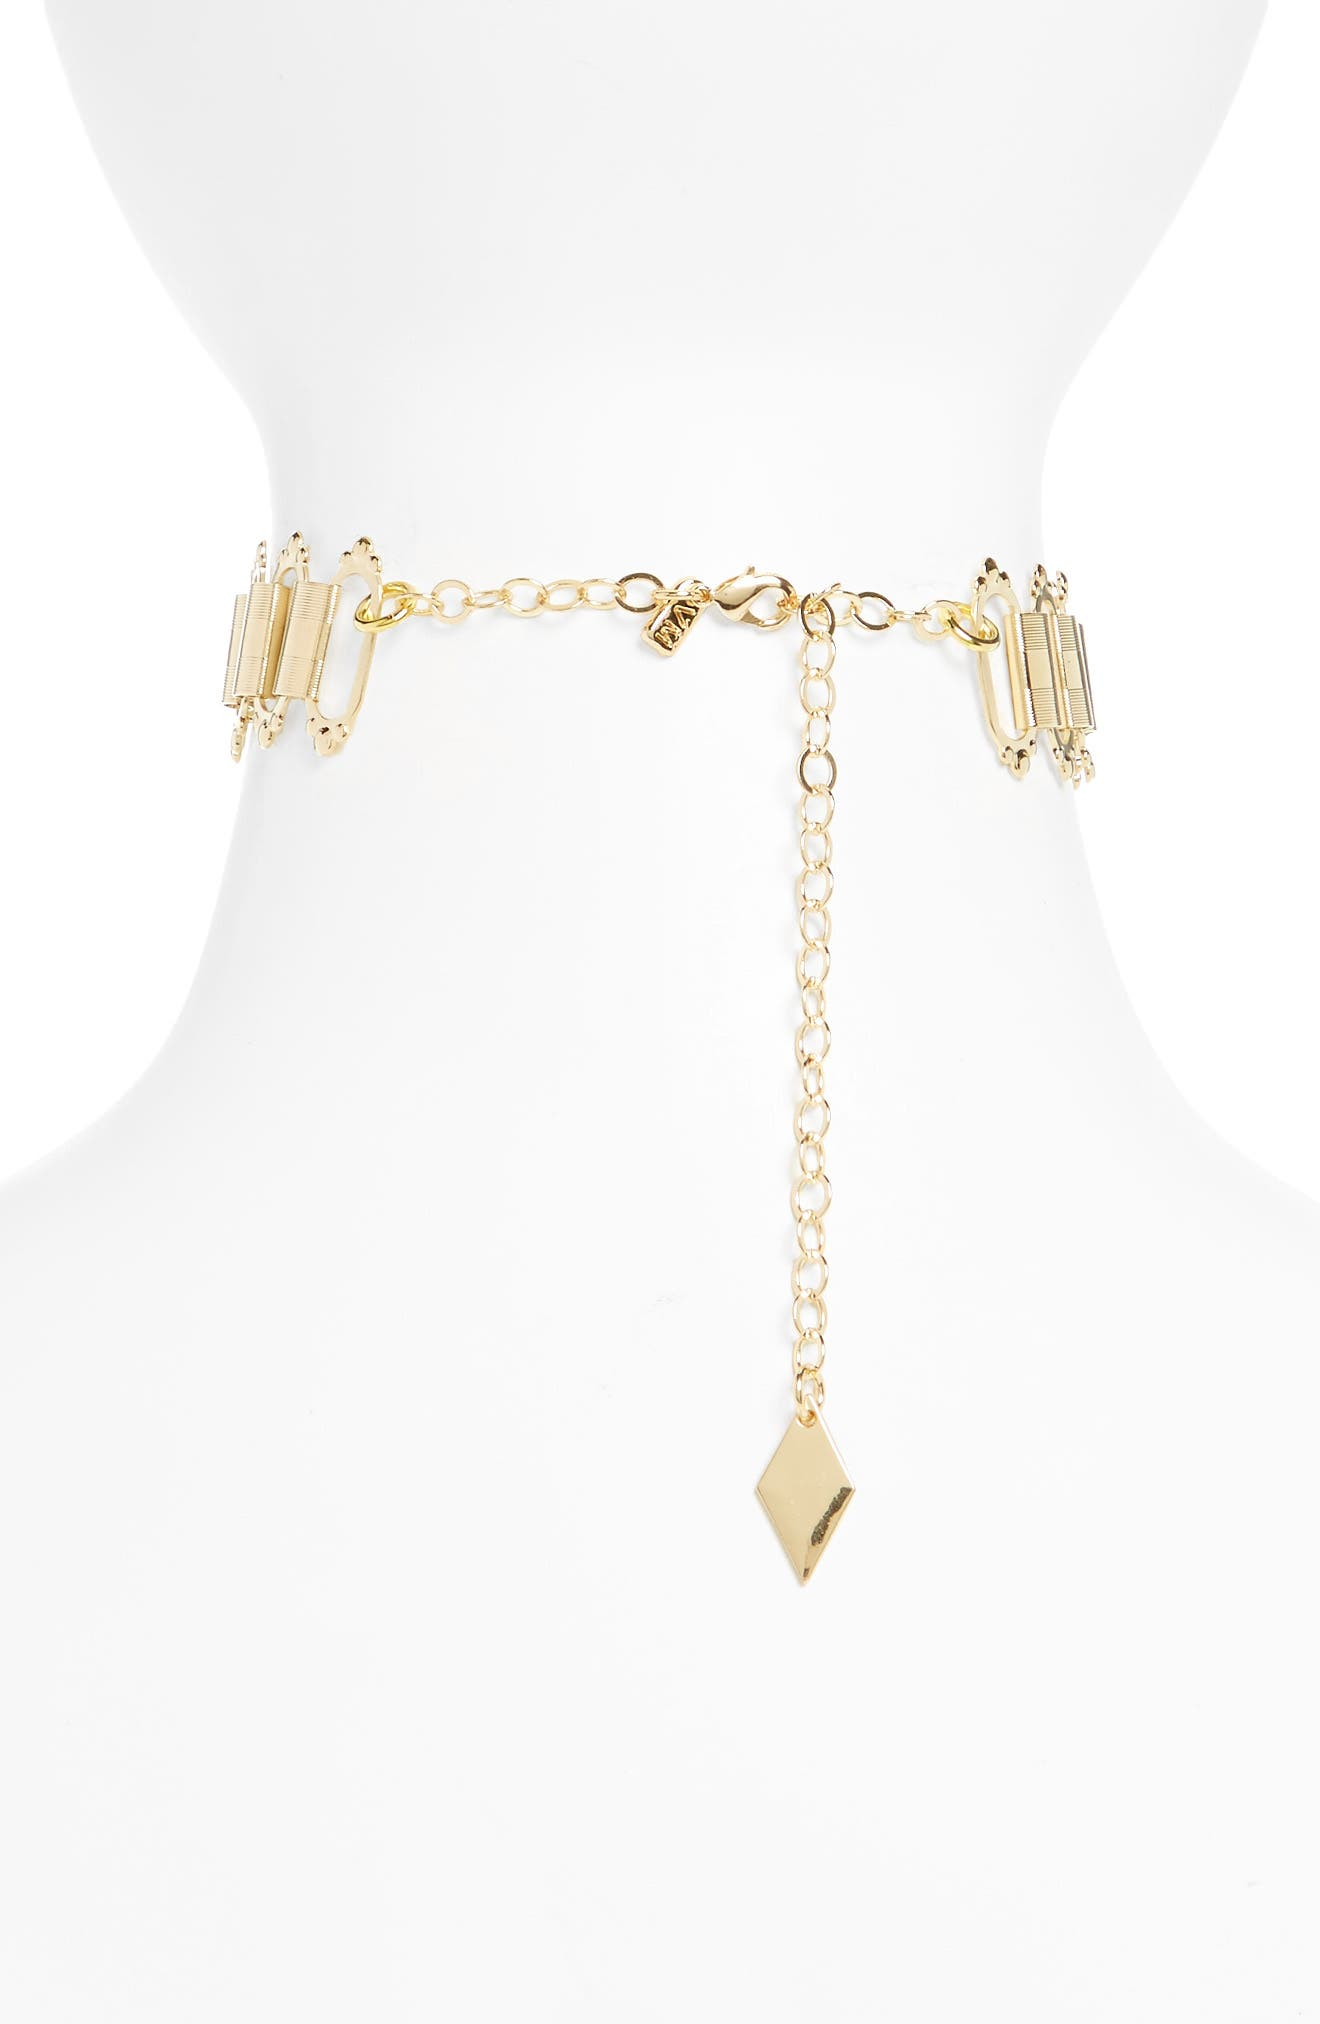 Sulai Choker Necklace,                             Alternate thumbnail 2, color,                             710